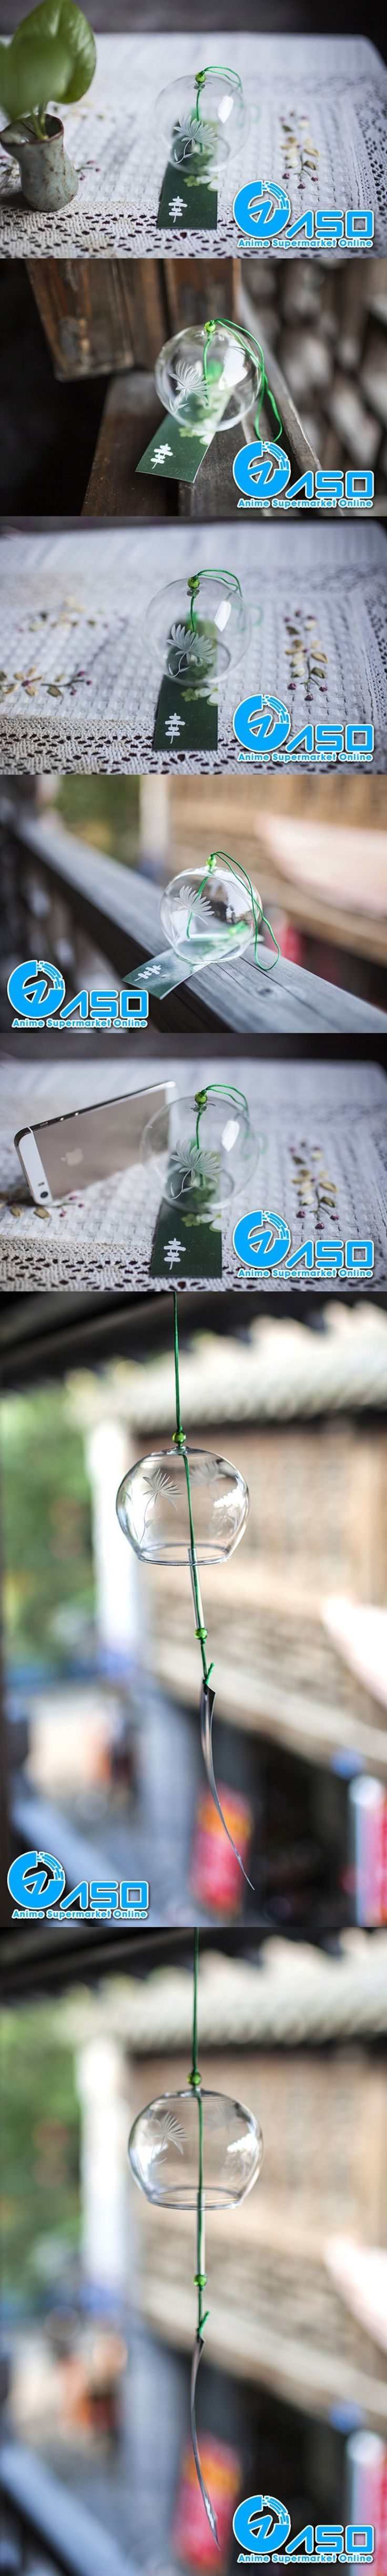 2pcs garden glass wind chimes feverfew Style Japanese Traditional wind bell car hanging pendant home decoration birthday gifts-in Glass Crafts from Home & Garden on Aliexpress.com | Alibaba Group